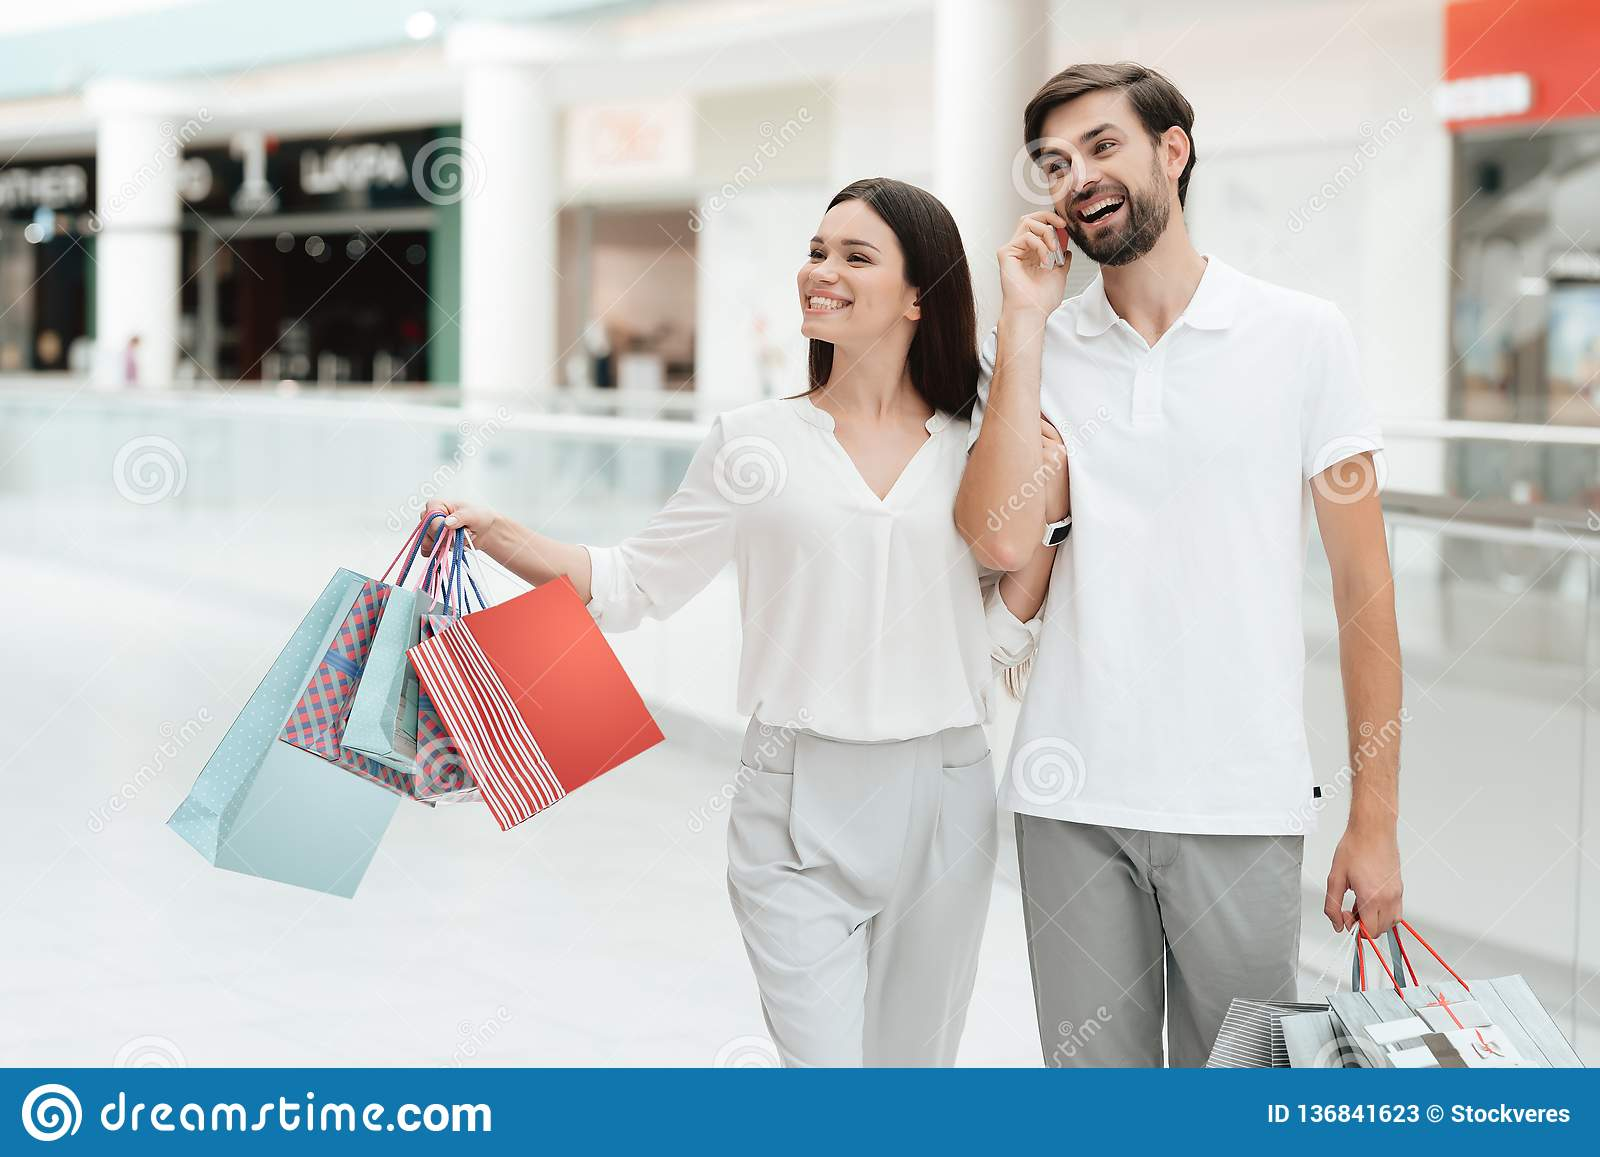 Man and woman are walking to another store in shopping mall. Man is talking on phone.